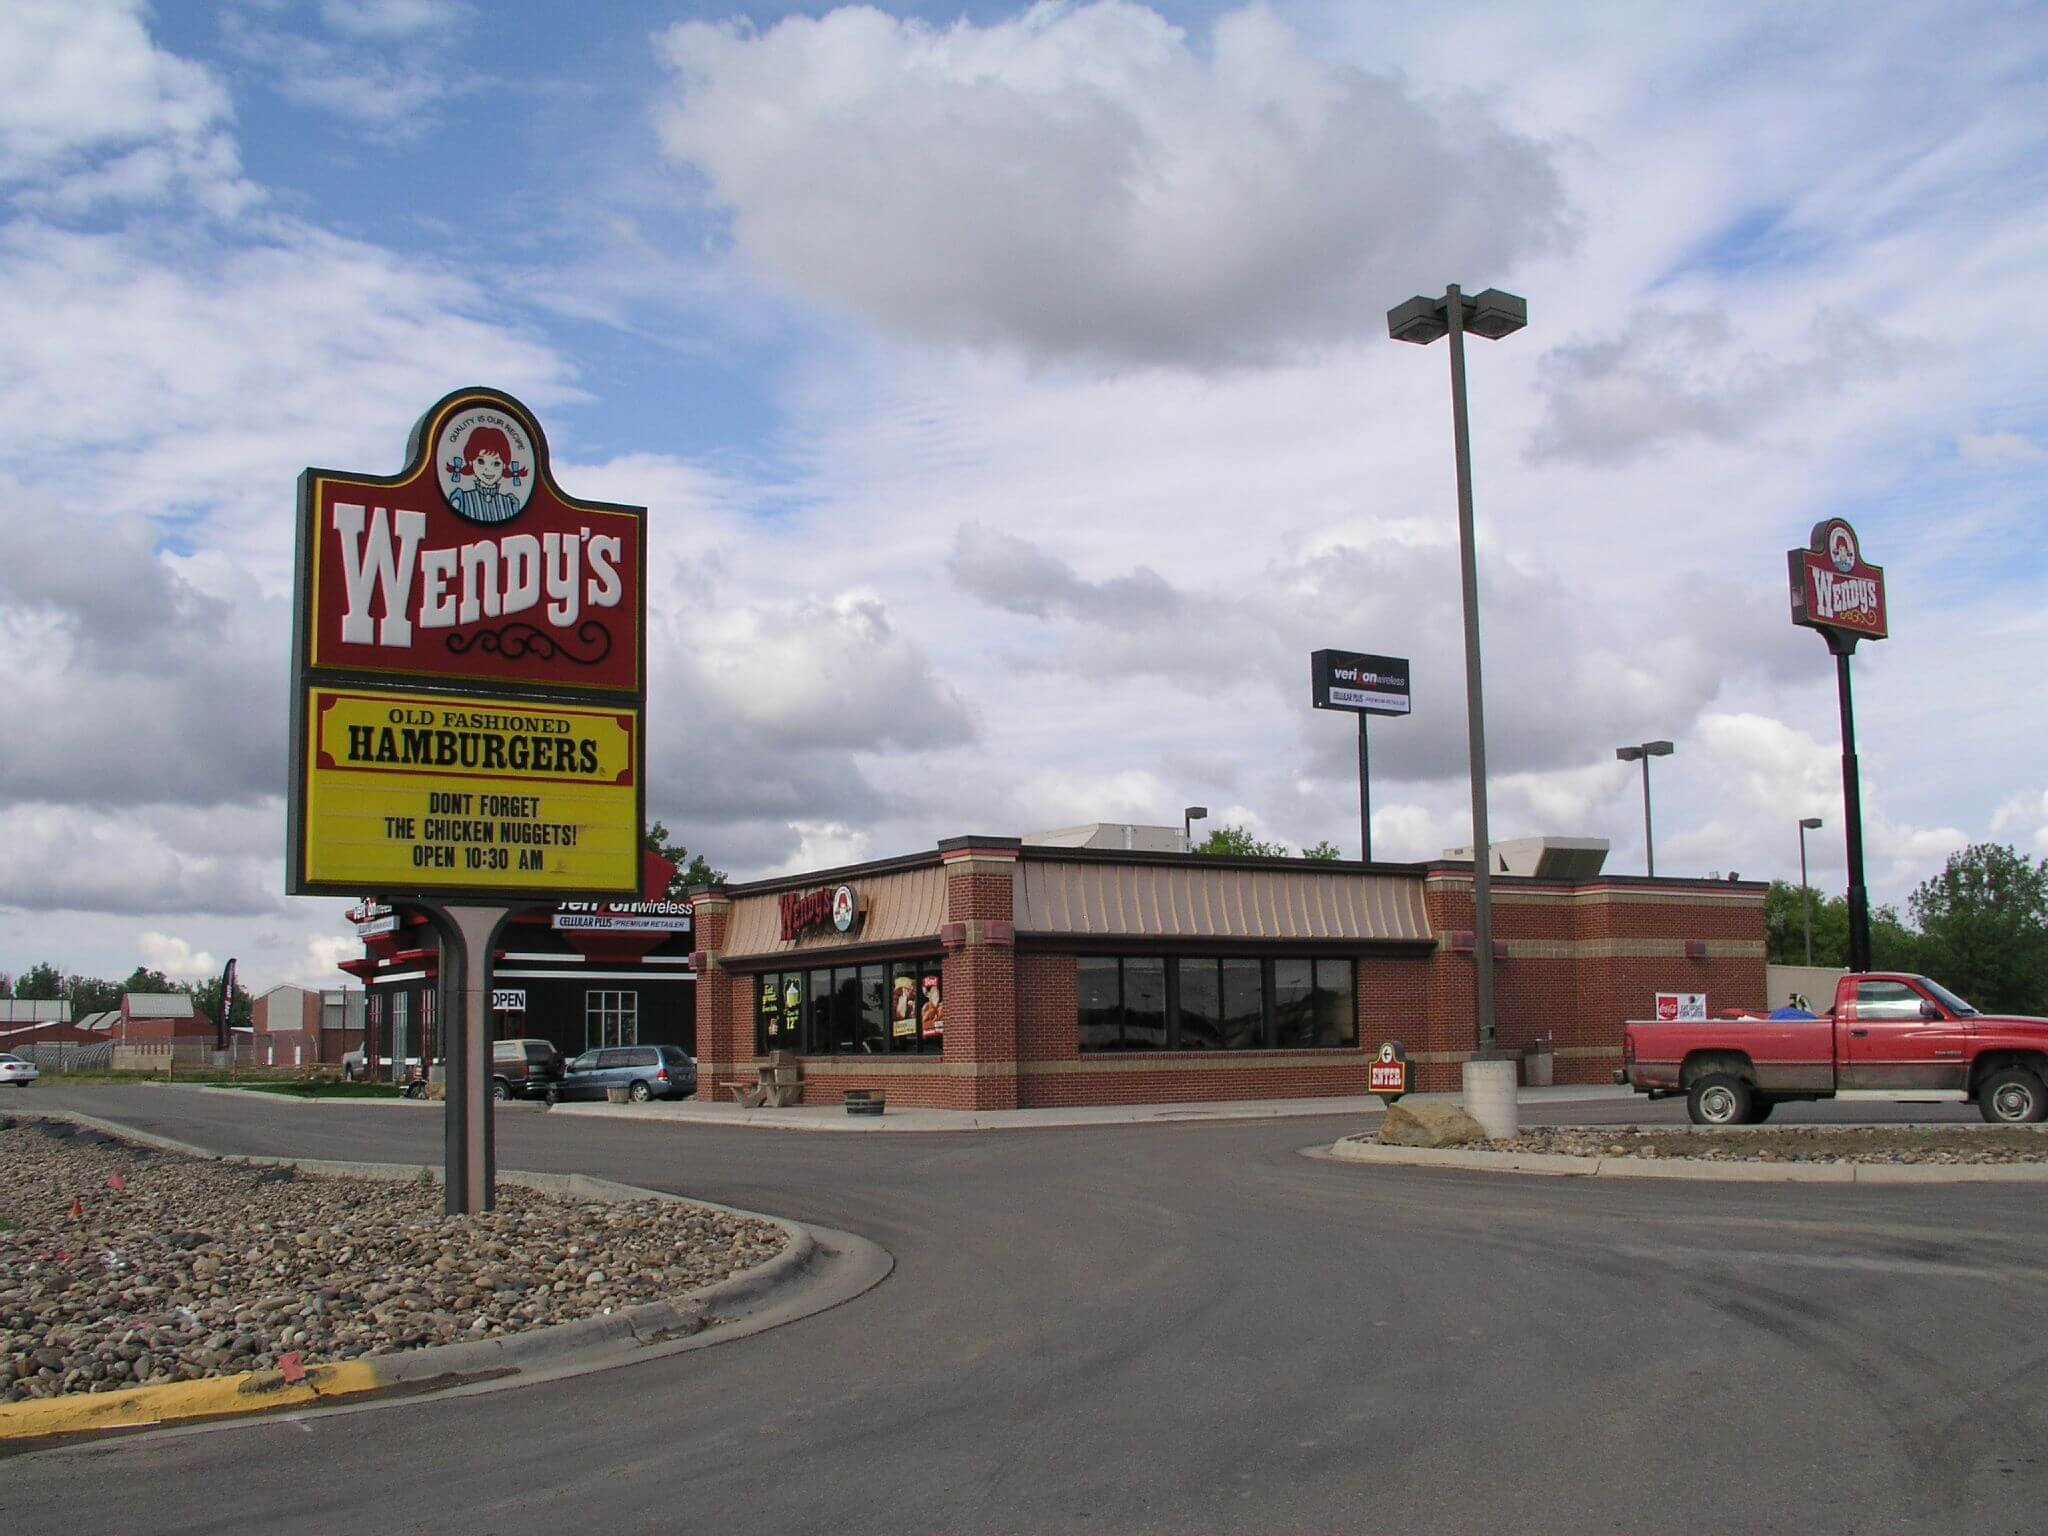 Premises Liability Filed Against Wendy's